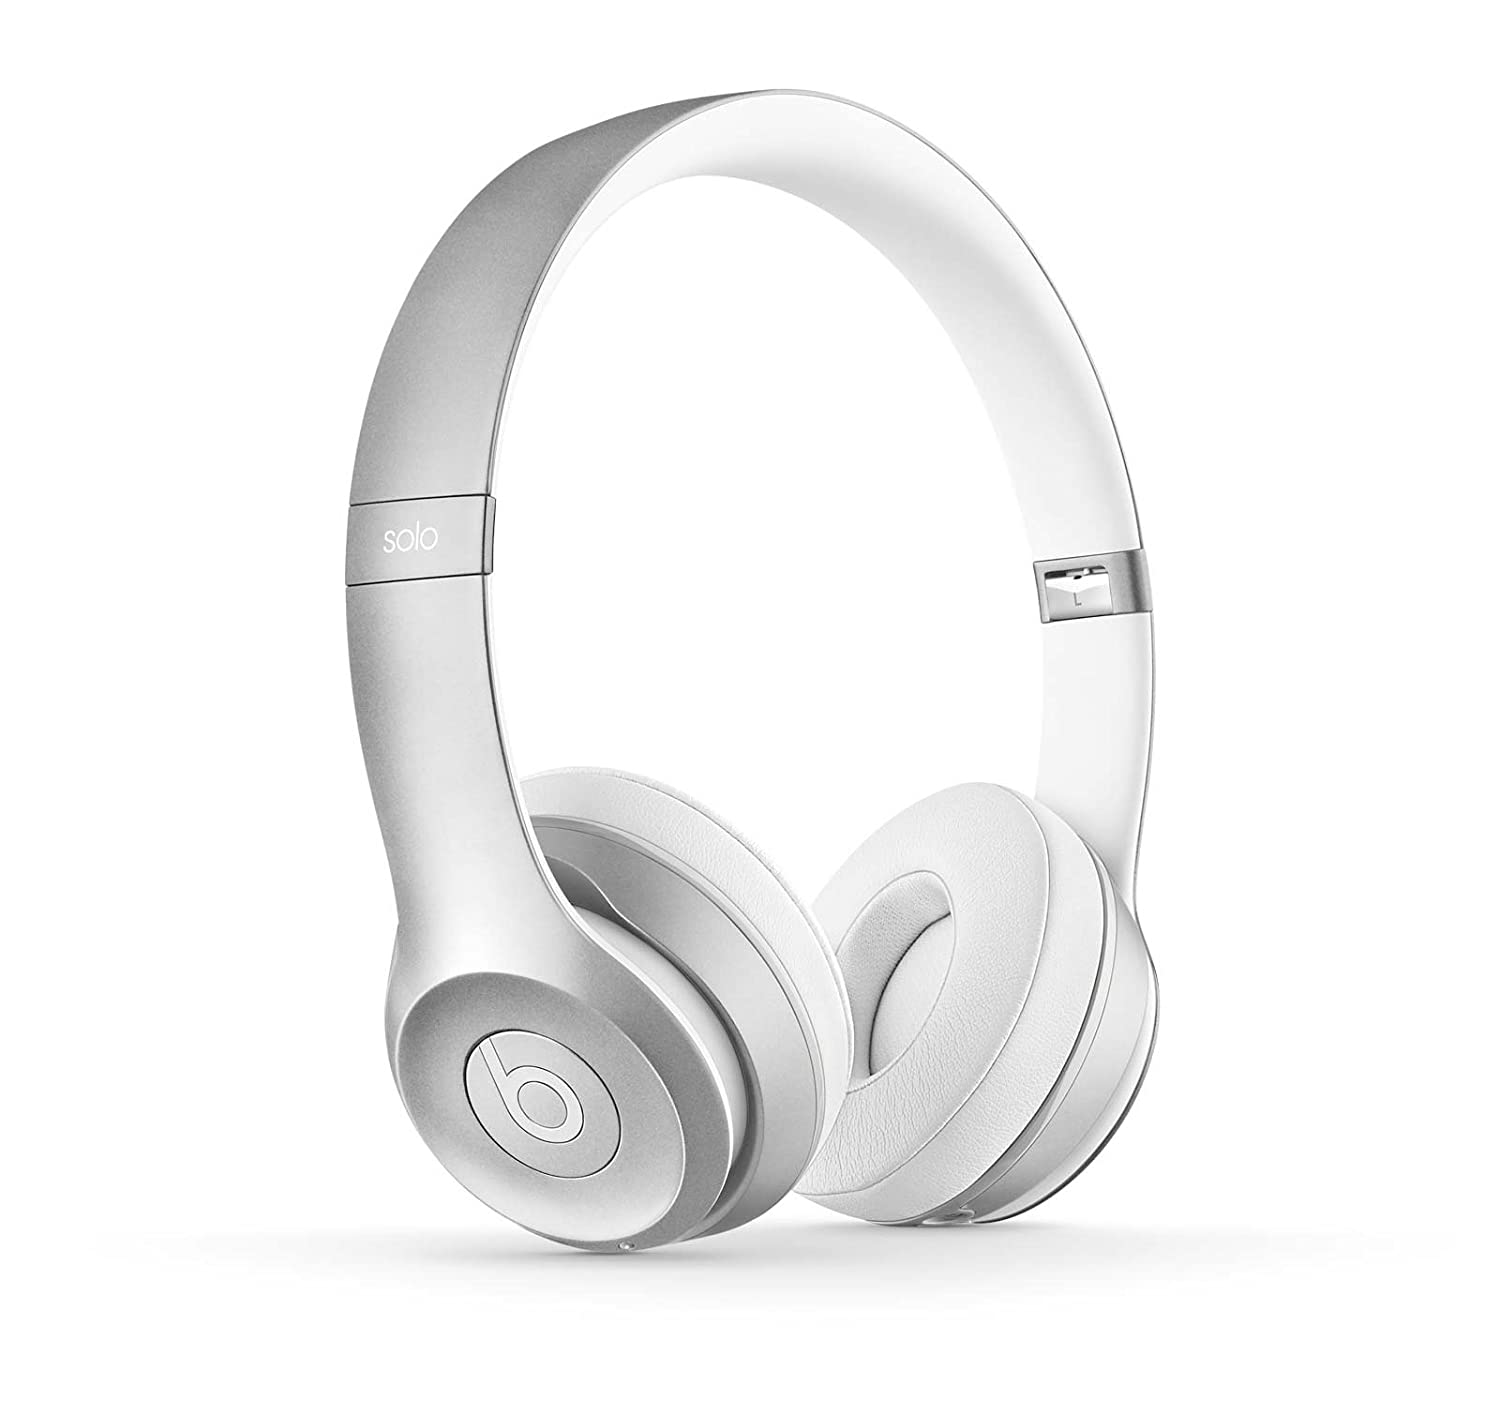 Beats Solo 3 Wireless Accessories Wire Center Pic16f877 Ks0108 Circuit Examples Microbasic Proteus Isis Amazon Com Solo2 On Ear Headphone Silver Old Rh Rose Gold